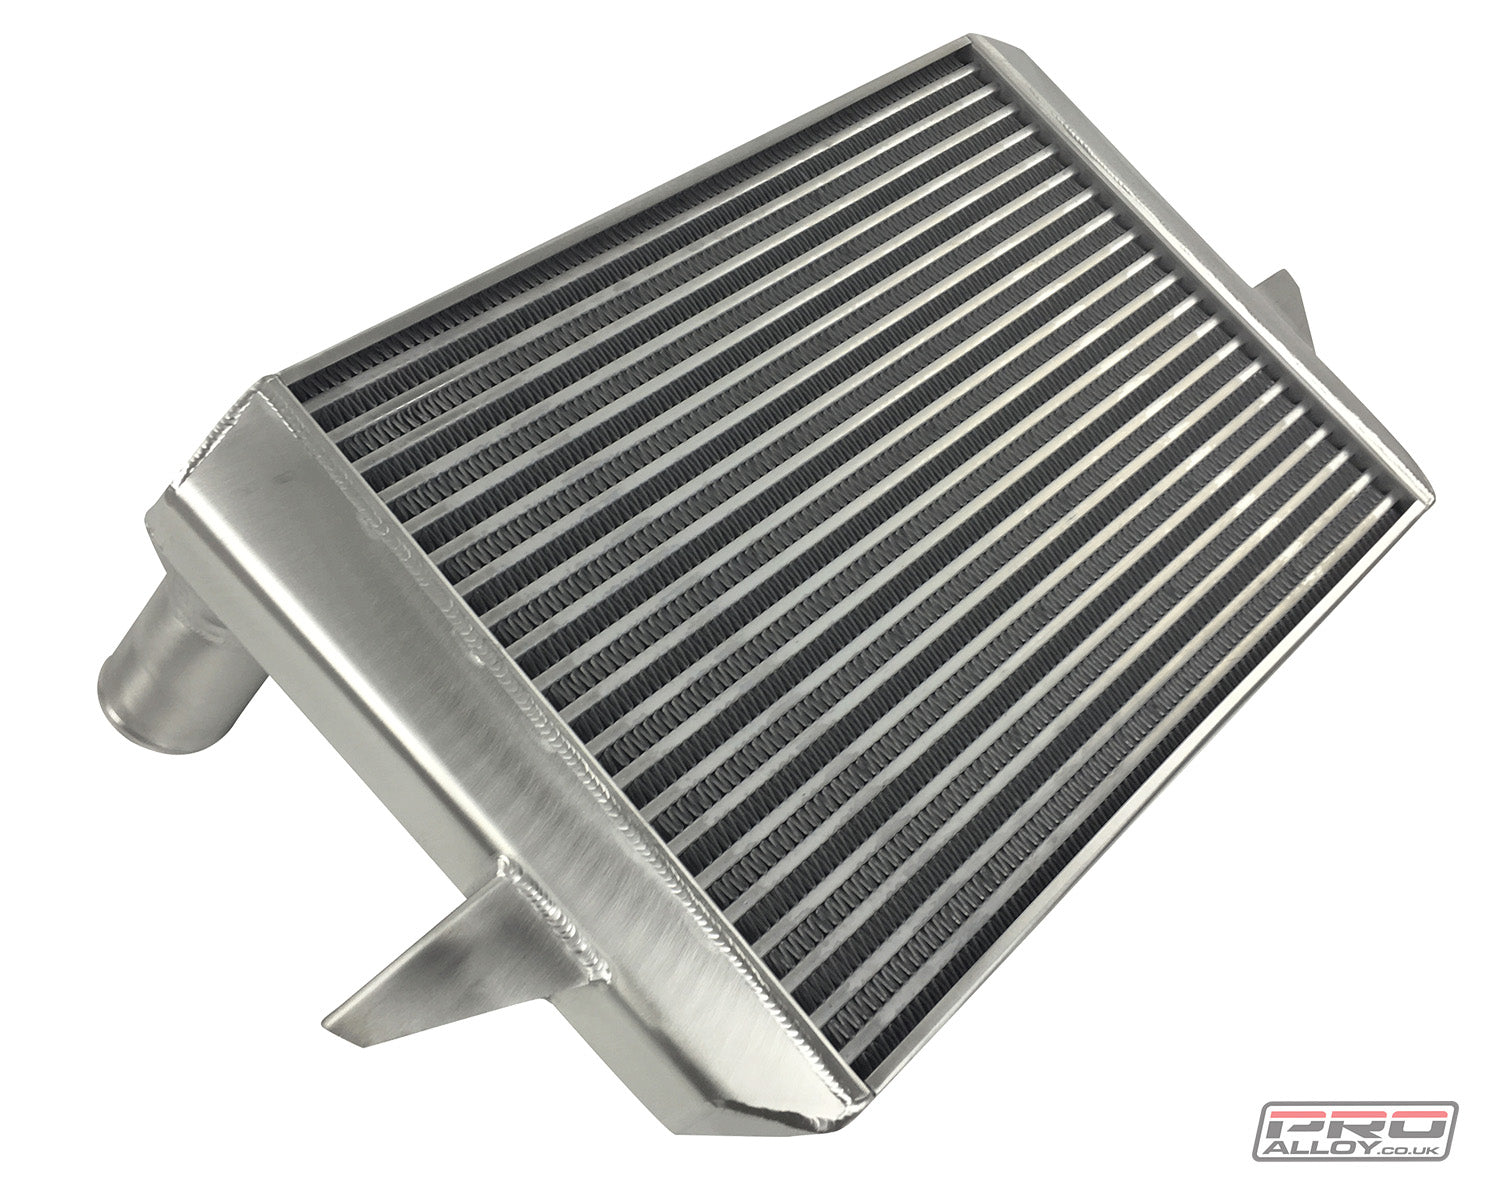 "Scorta Cosworth Intercooler - 50mm + tubi da 3""."